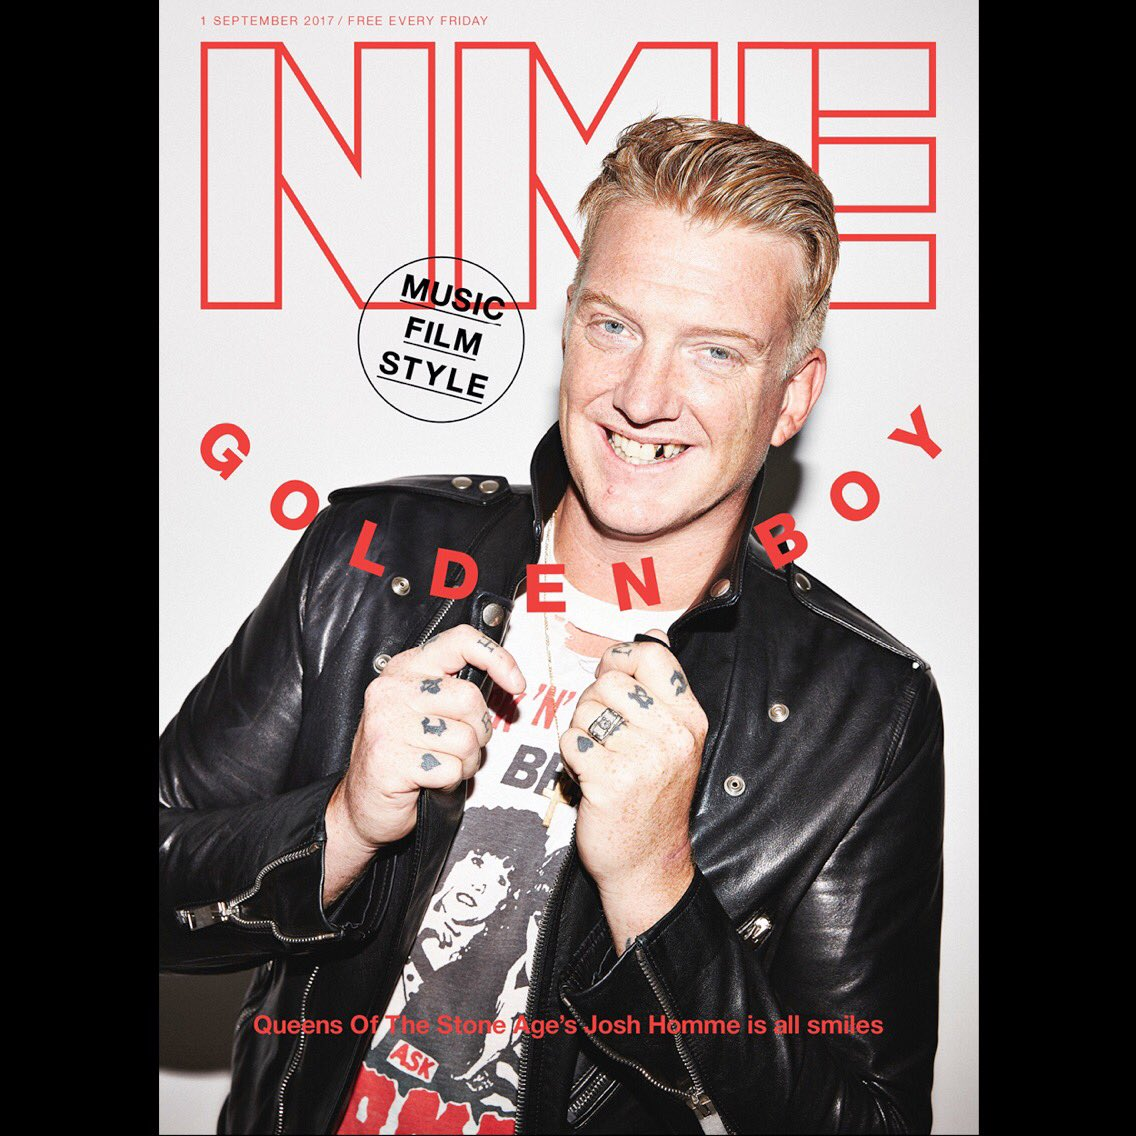 Josh Homme of Queens of the Stone Age on the cover of NME Magazine